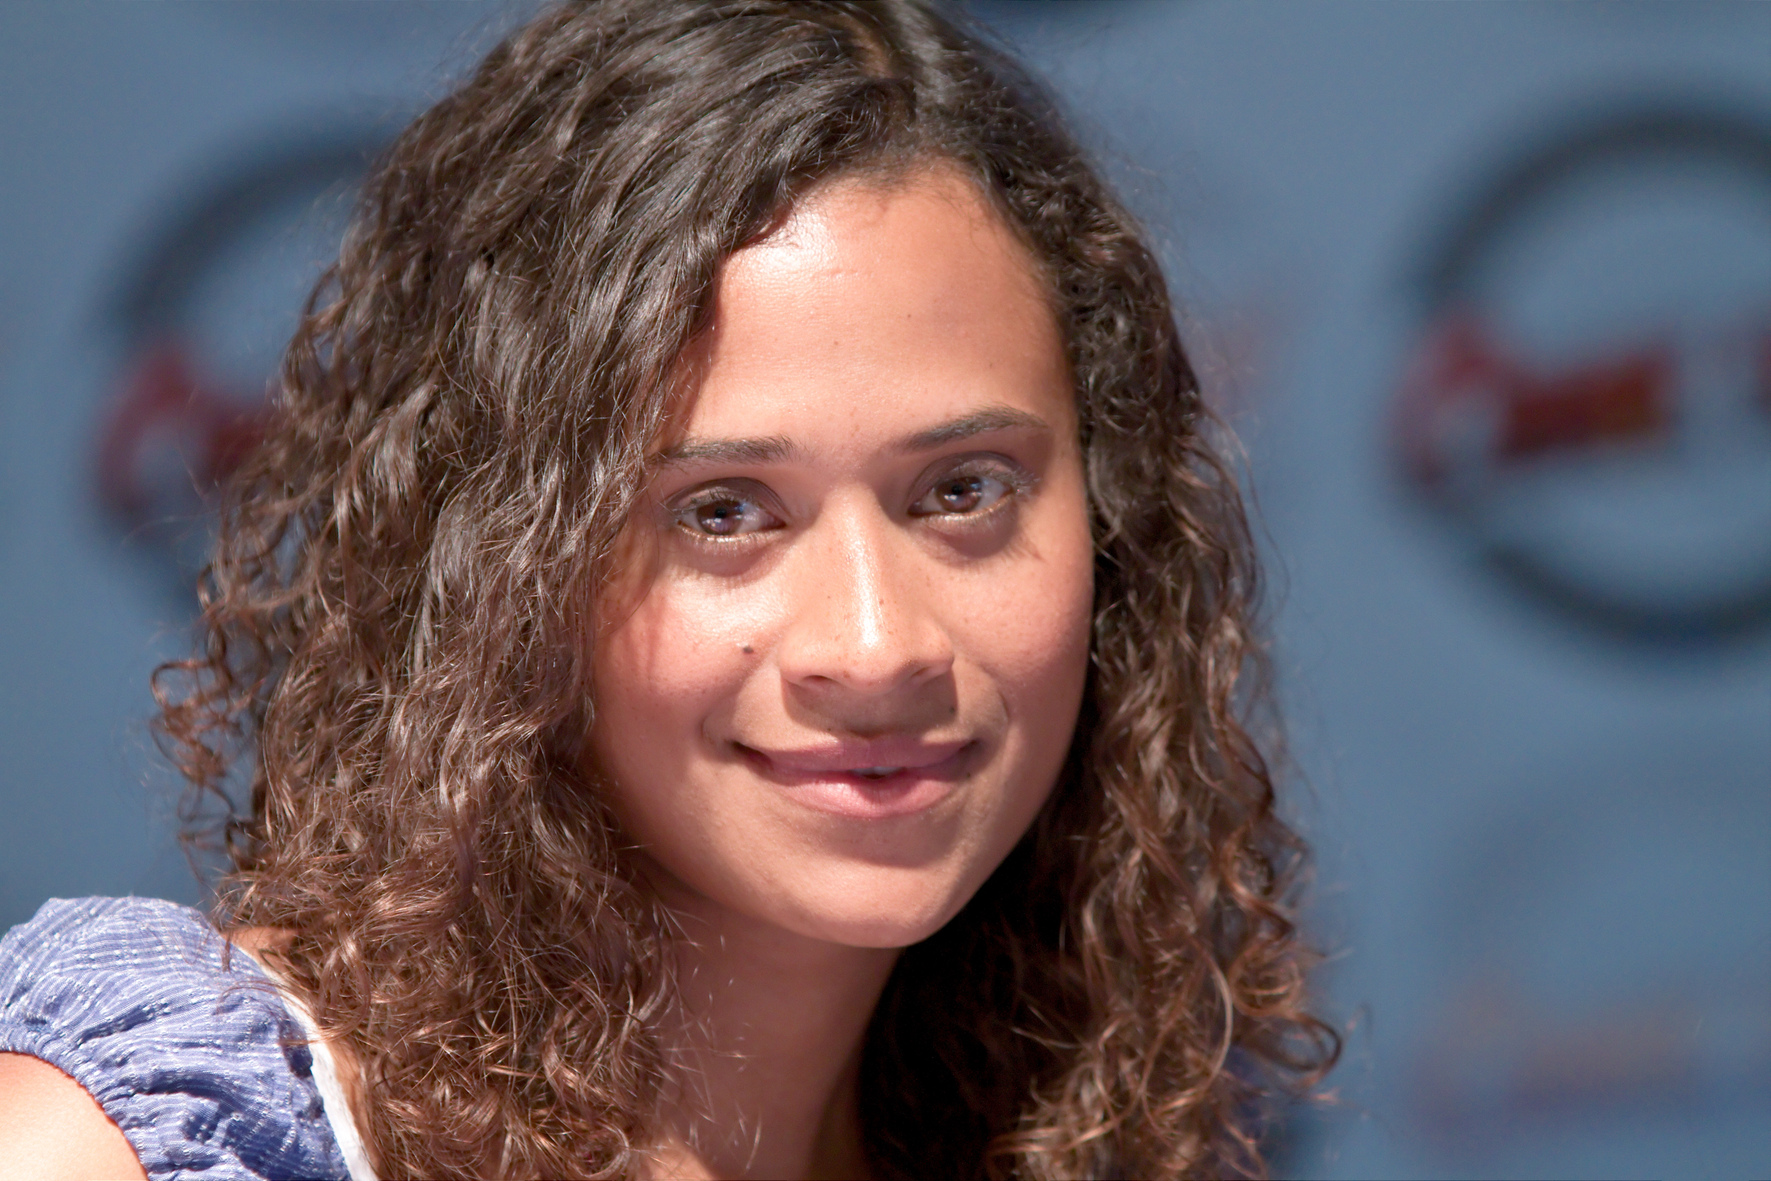 angel coulby twitterangel coulby 2016, angel coulby twitter, angel coulby movies, angel coulby fansite, angel coulby family, angel coulby photos, angel coulby imagine me and you, angel coulby gif, angel coulby wdw, angel coulby instagram, angel coulby 2017, angel coulby doctor who, angel coulby wedding, angel coulby boyfriend, angel coulby movies and tv shows, angel coulby biography, angel coulby and bradley james 2014, angel coulby parents, angel coulby wiki